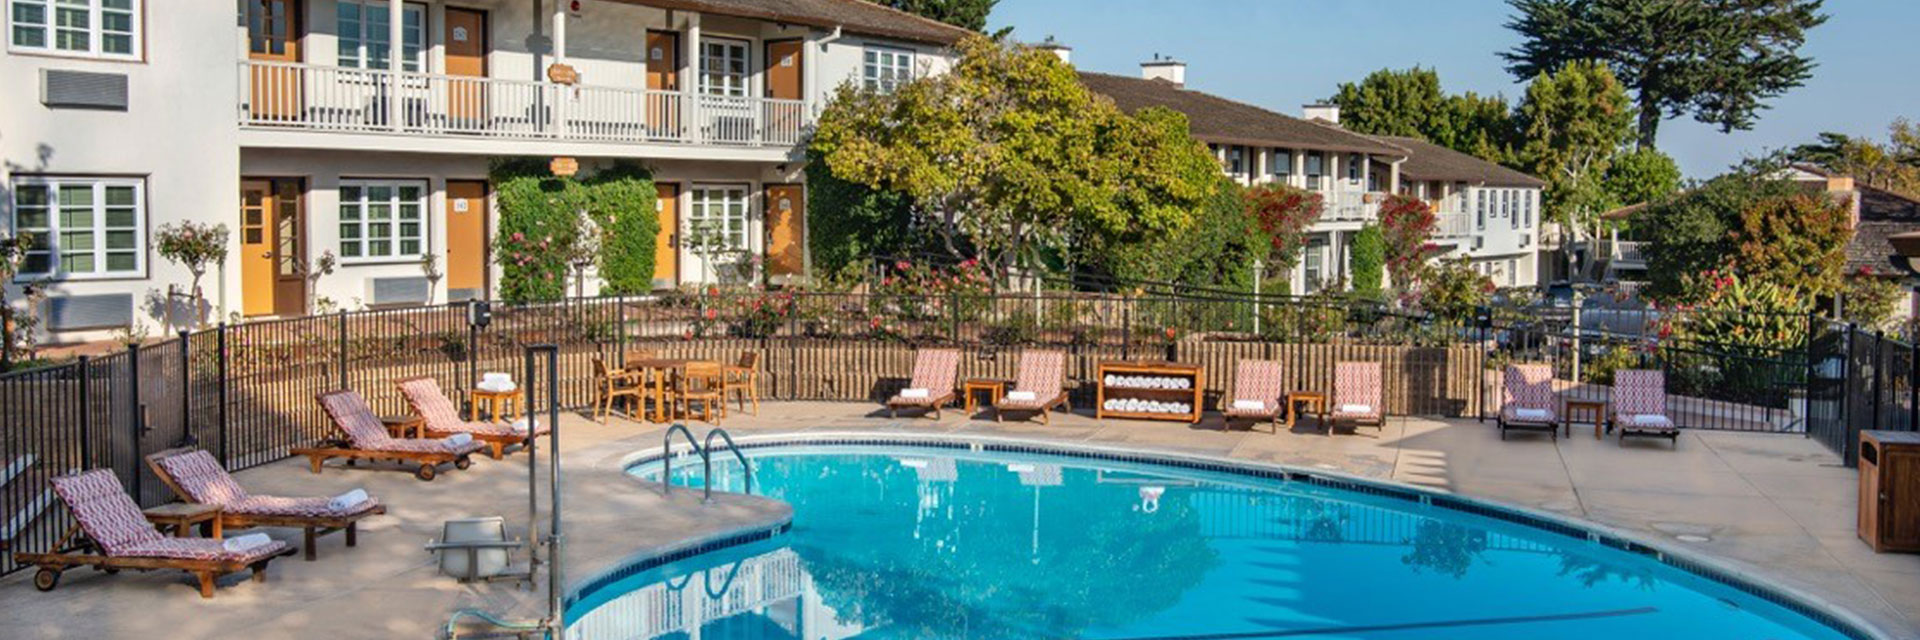 Heated Outdoor Pool at Hotel California